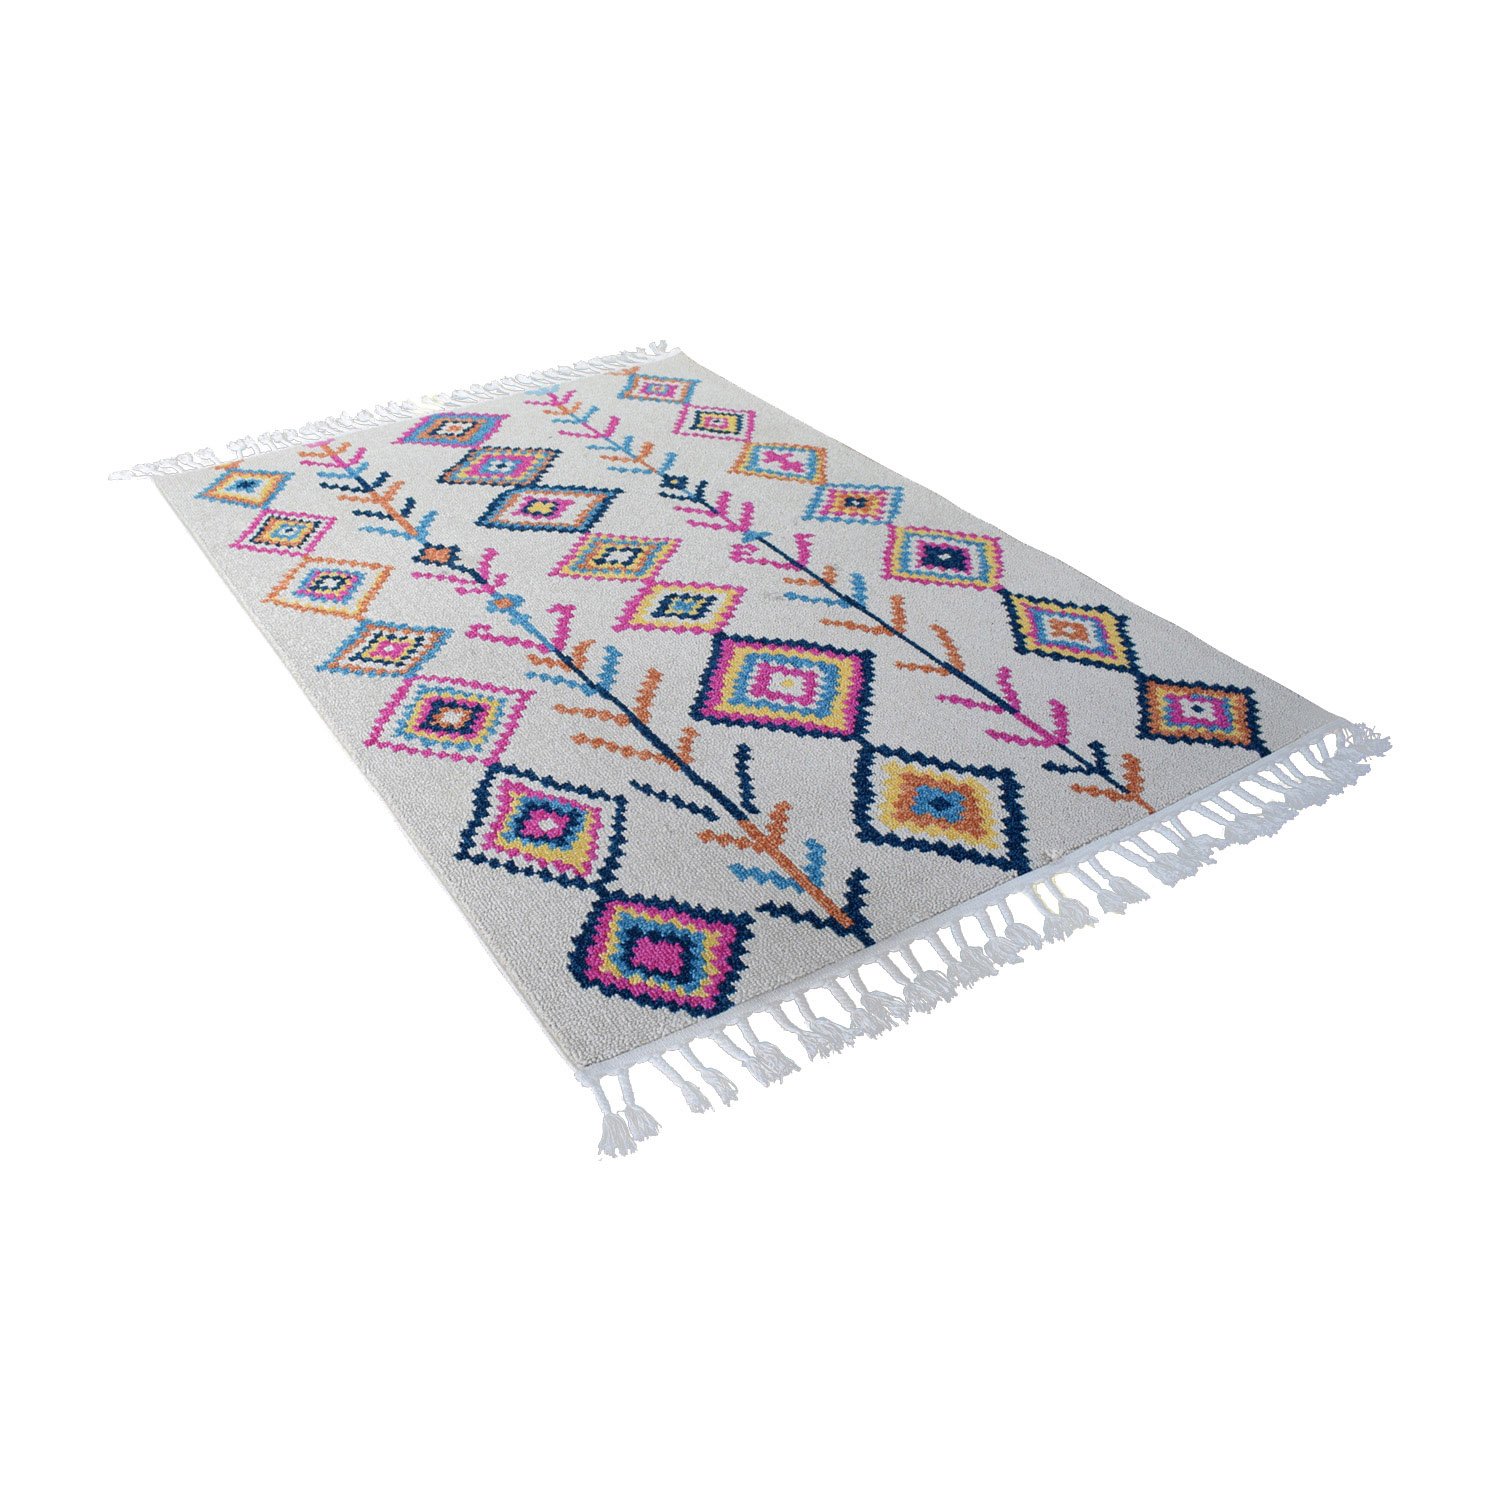 Surya Surya Love Multi-Color Rug nj